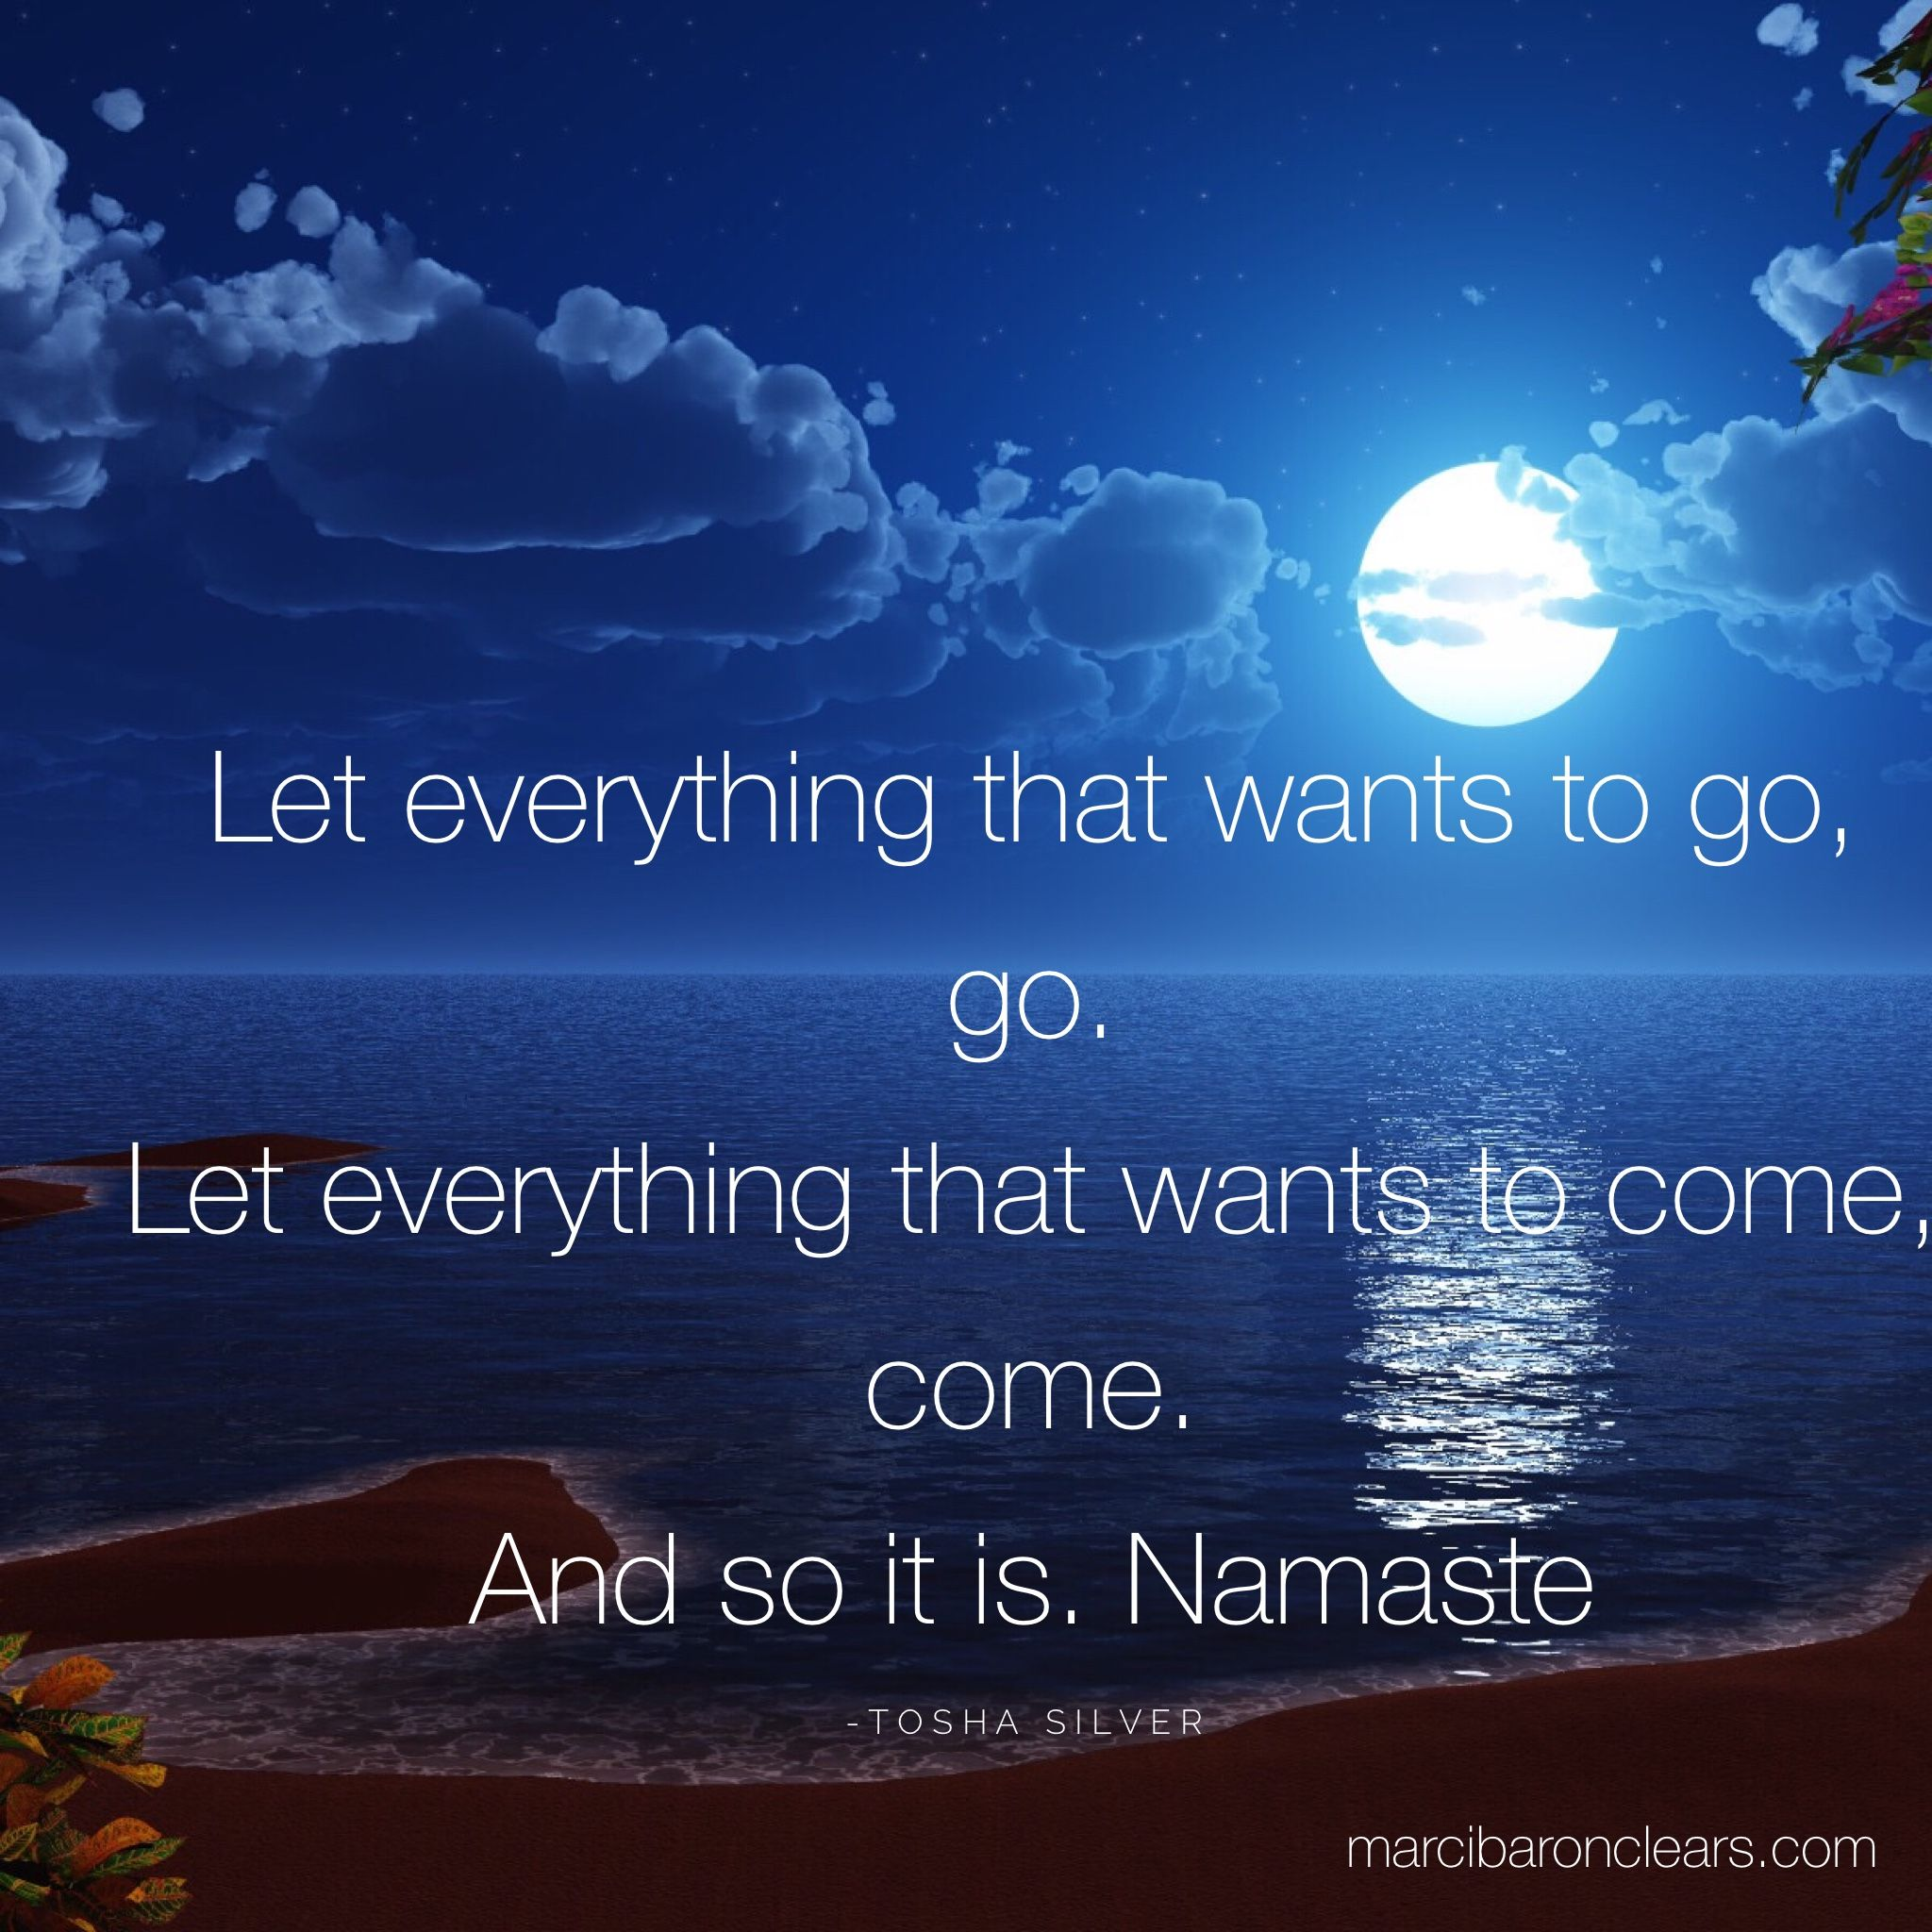 Motivational Inspirational Quotes: How To Use The Full Moon To Let Go